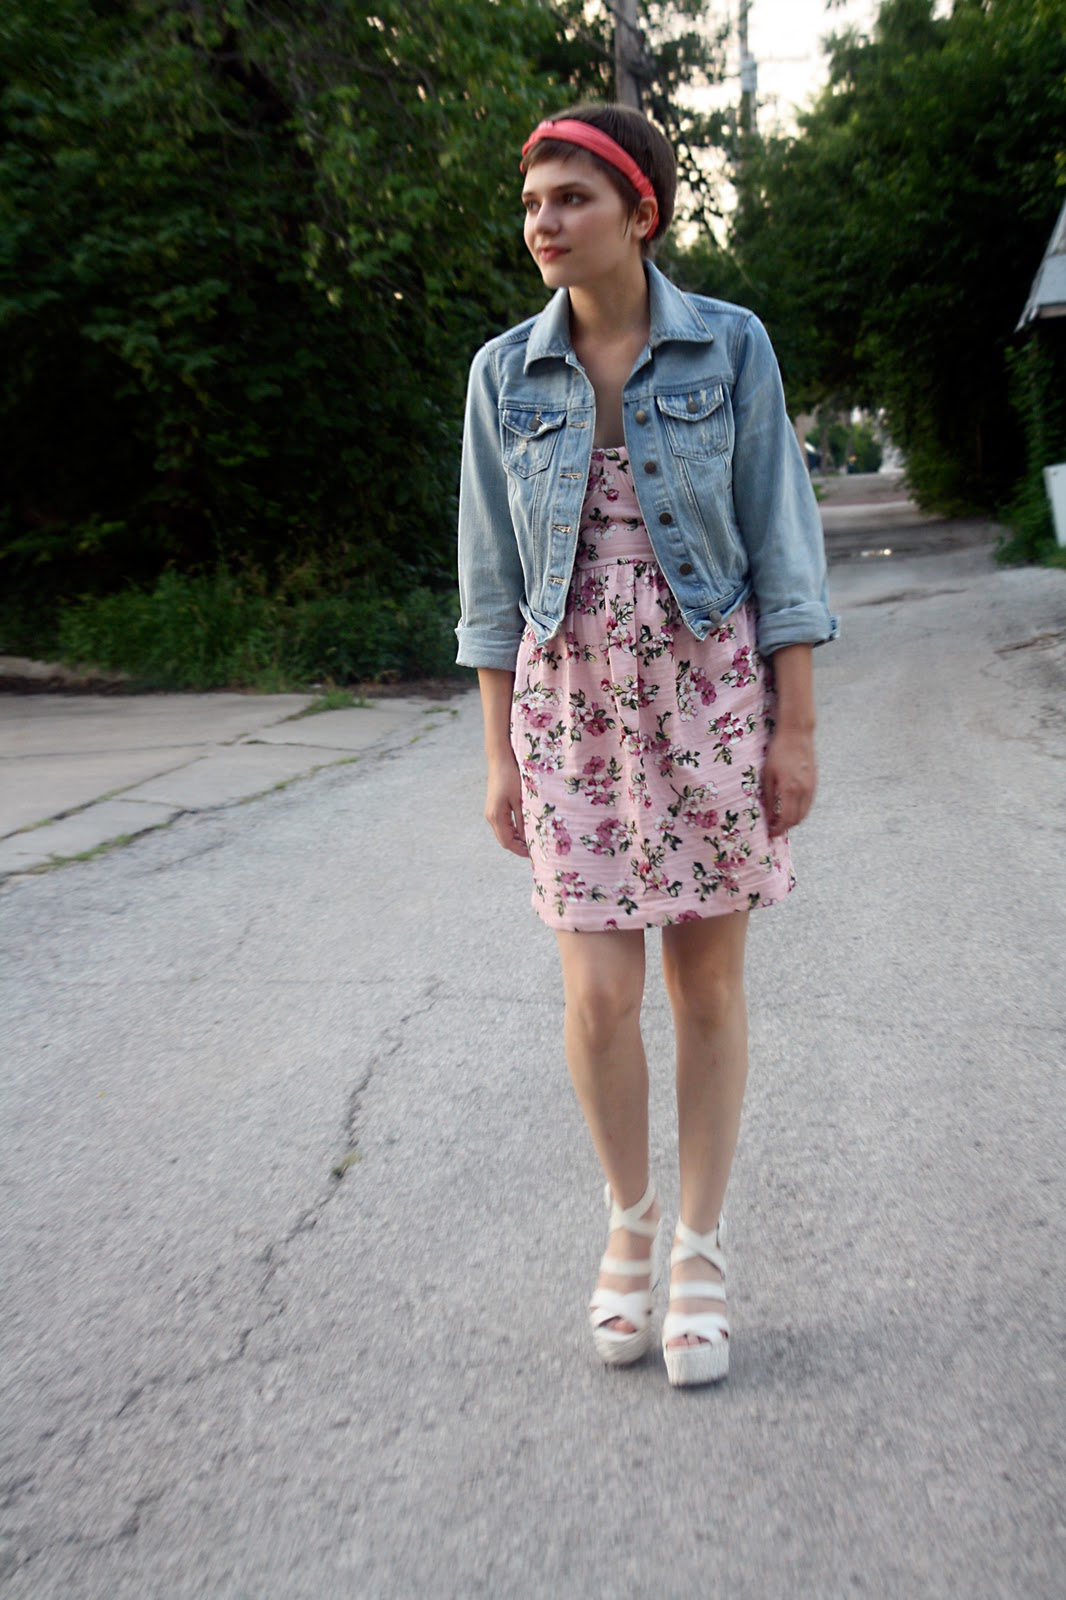 Style floral dresses turtleneck shirts lace blouses and gypsy tops